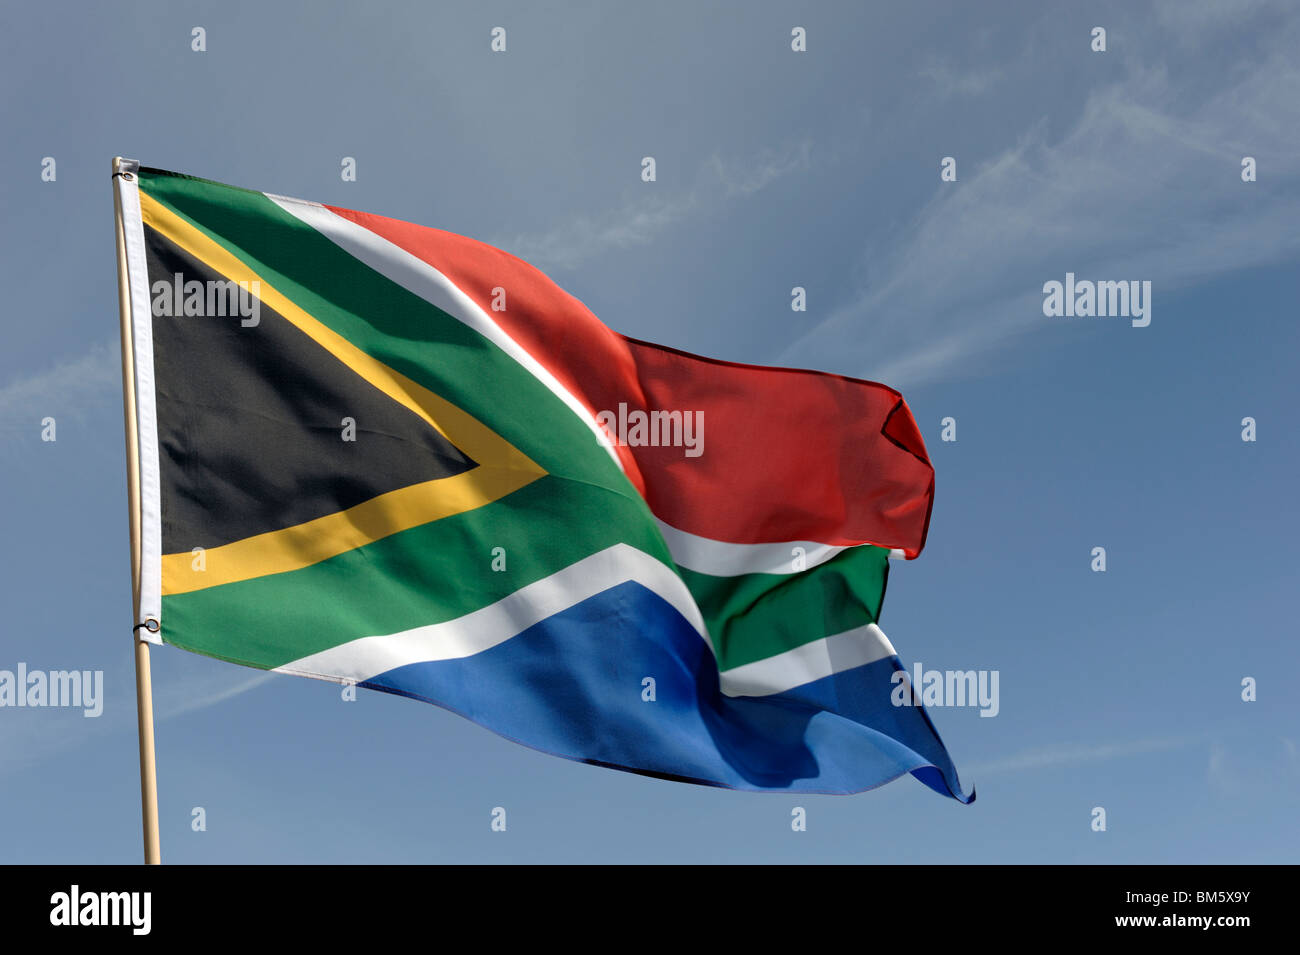 Flag Africa Stockfotos & Flag Africa Bilder - Seite 3 - Alamy